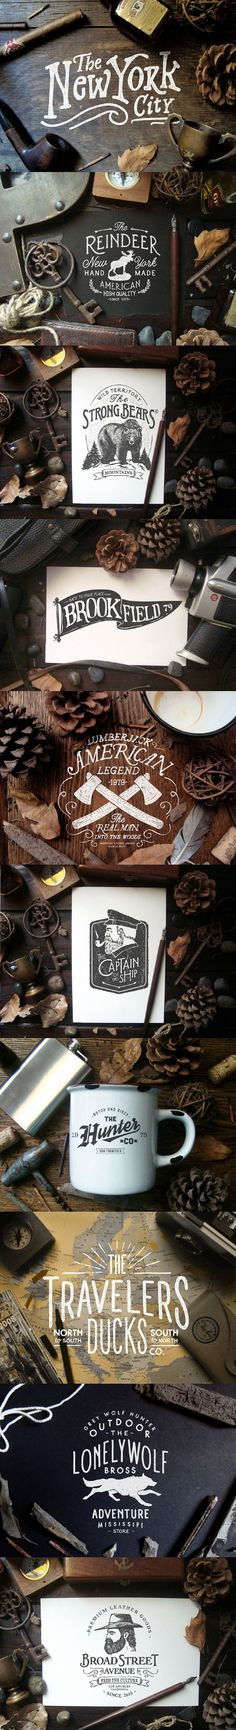 Love this rustic branding & warm neutral colours #branding #rustic #nautral